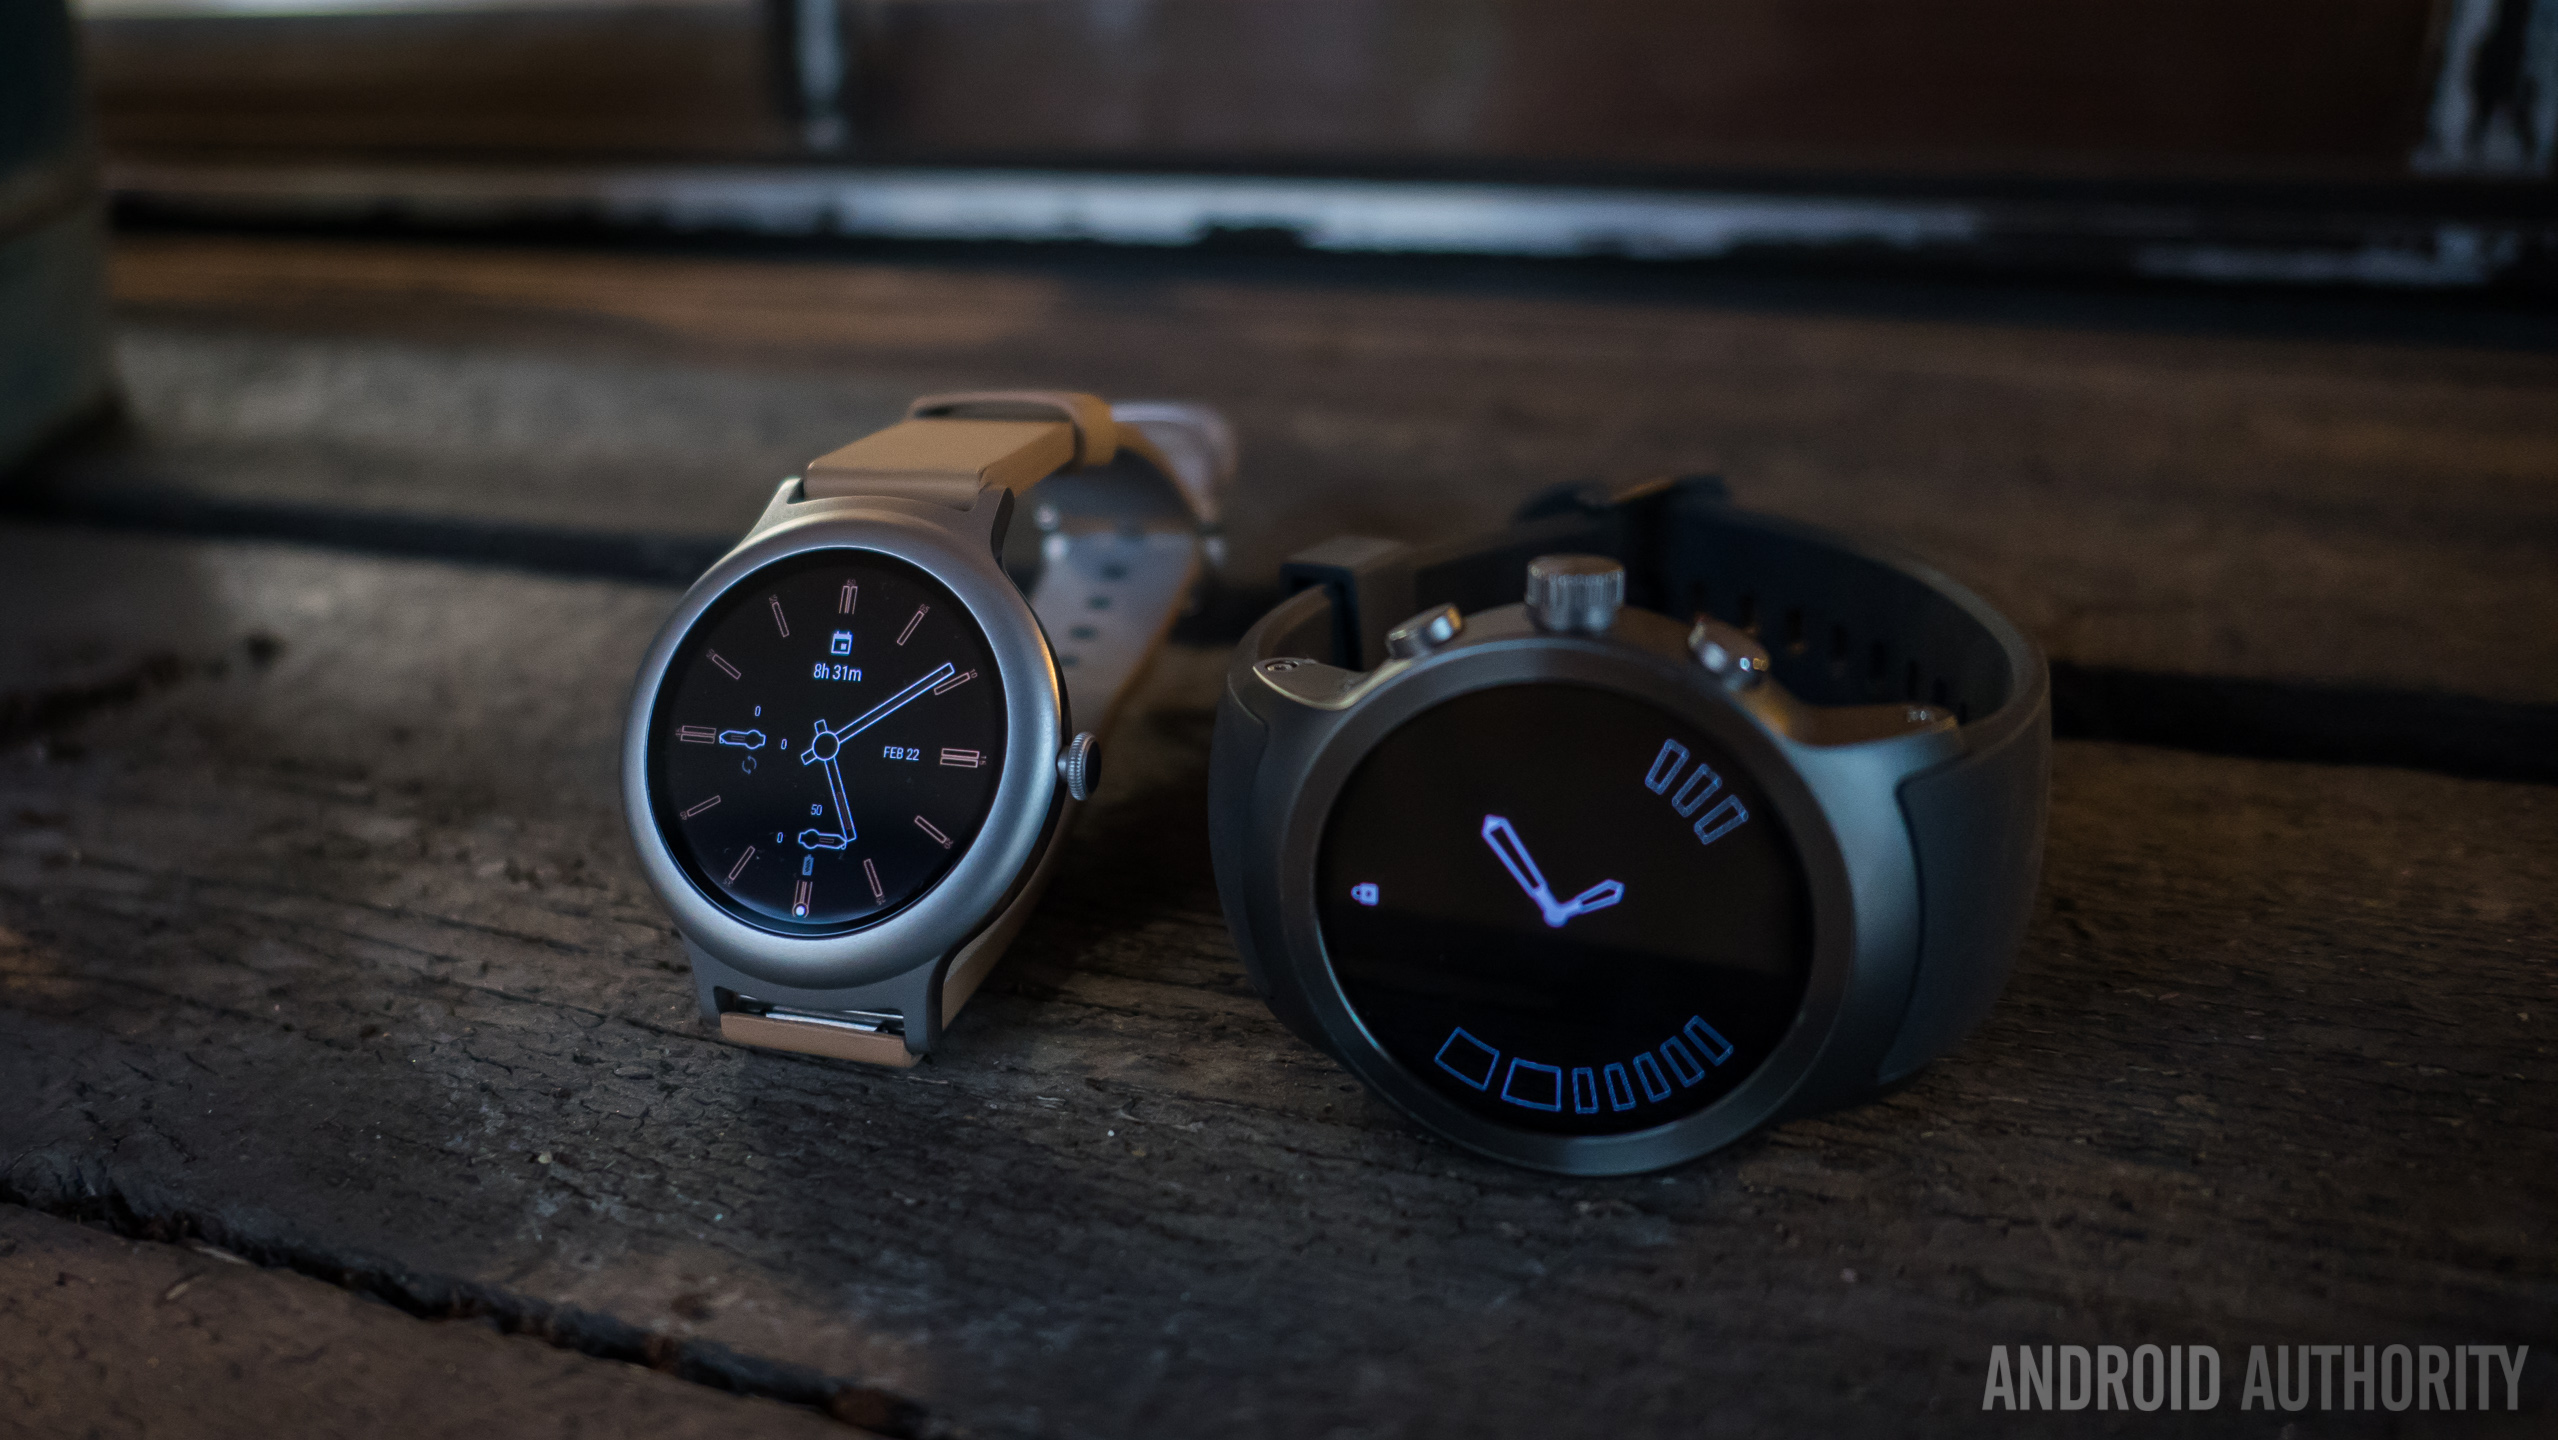 Samsung Galaxy Watch Review The Smartwatch That Tries To